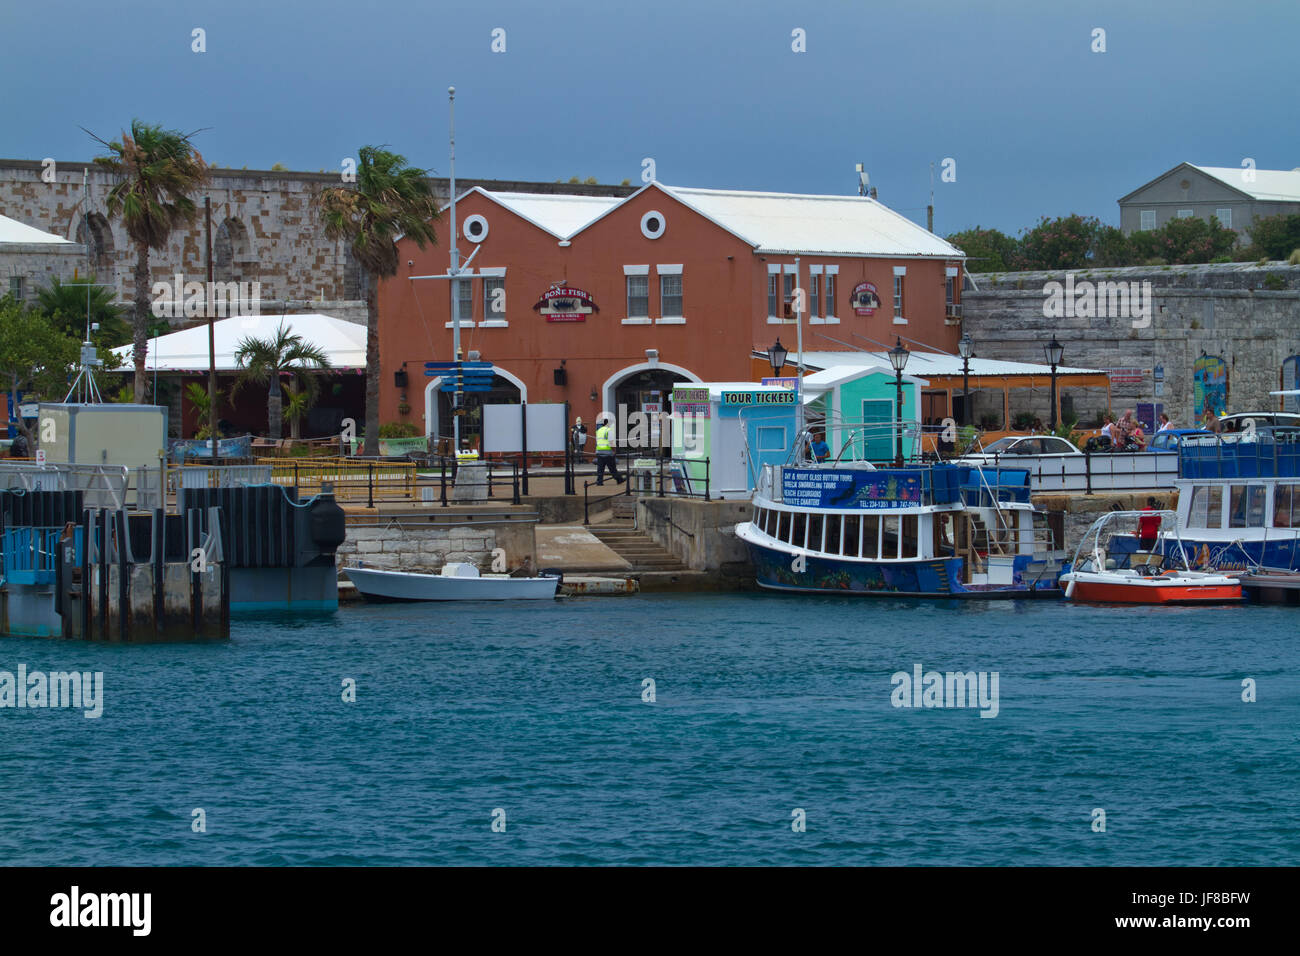 Bermuda Ferry Ride - Stock Image